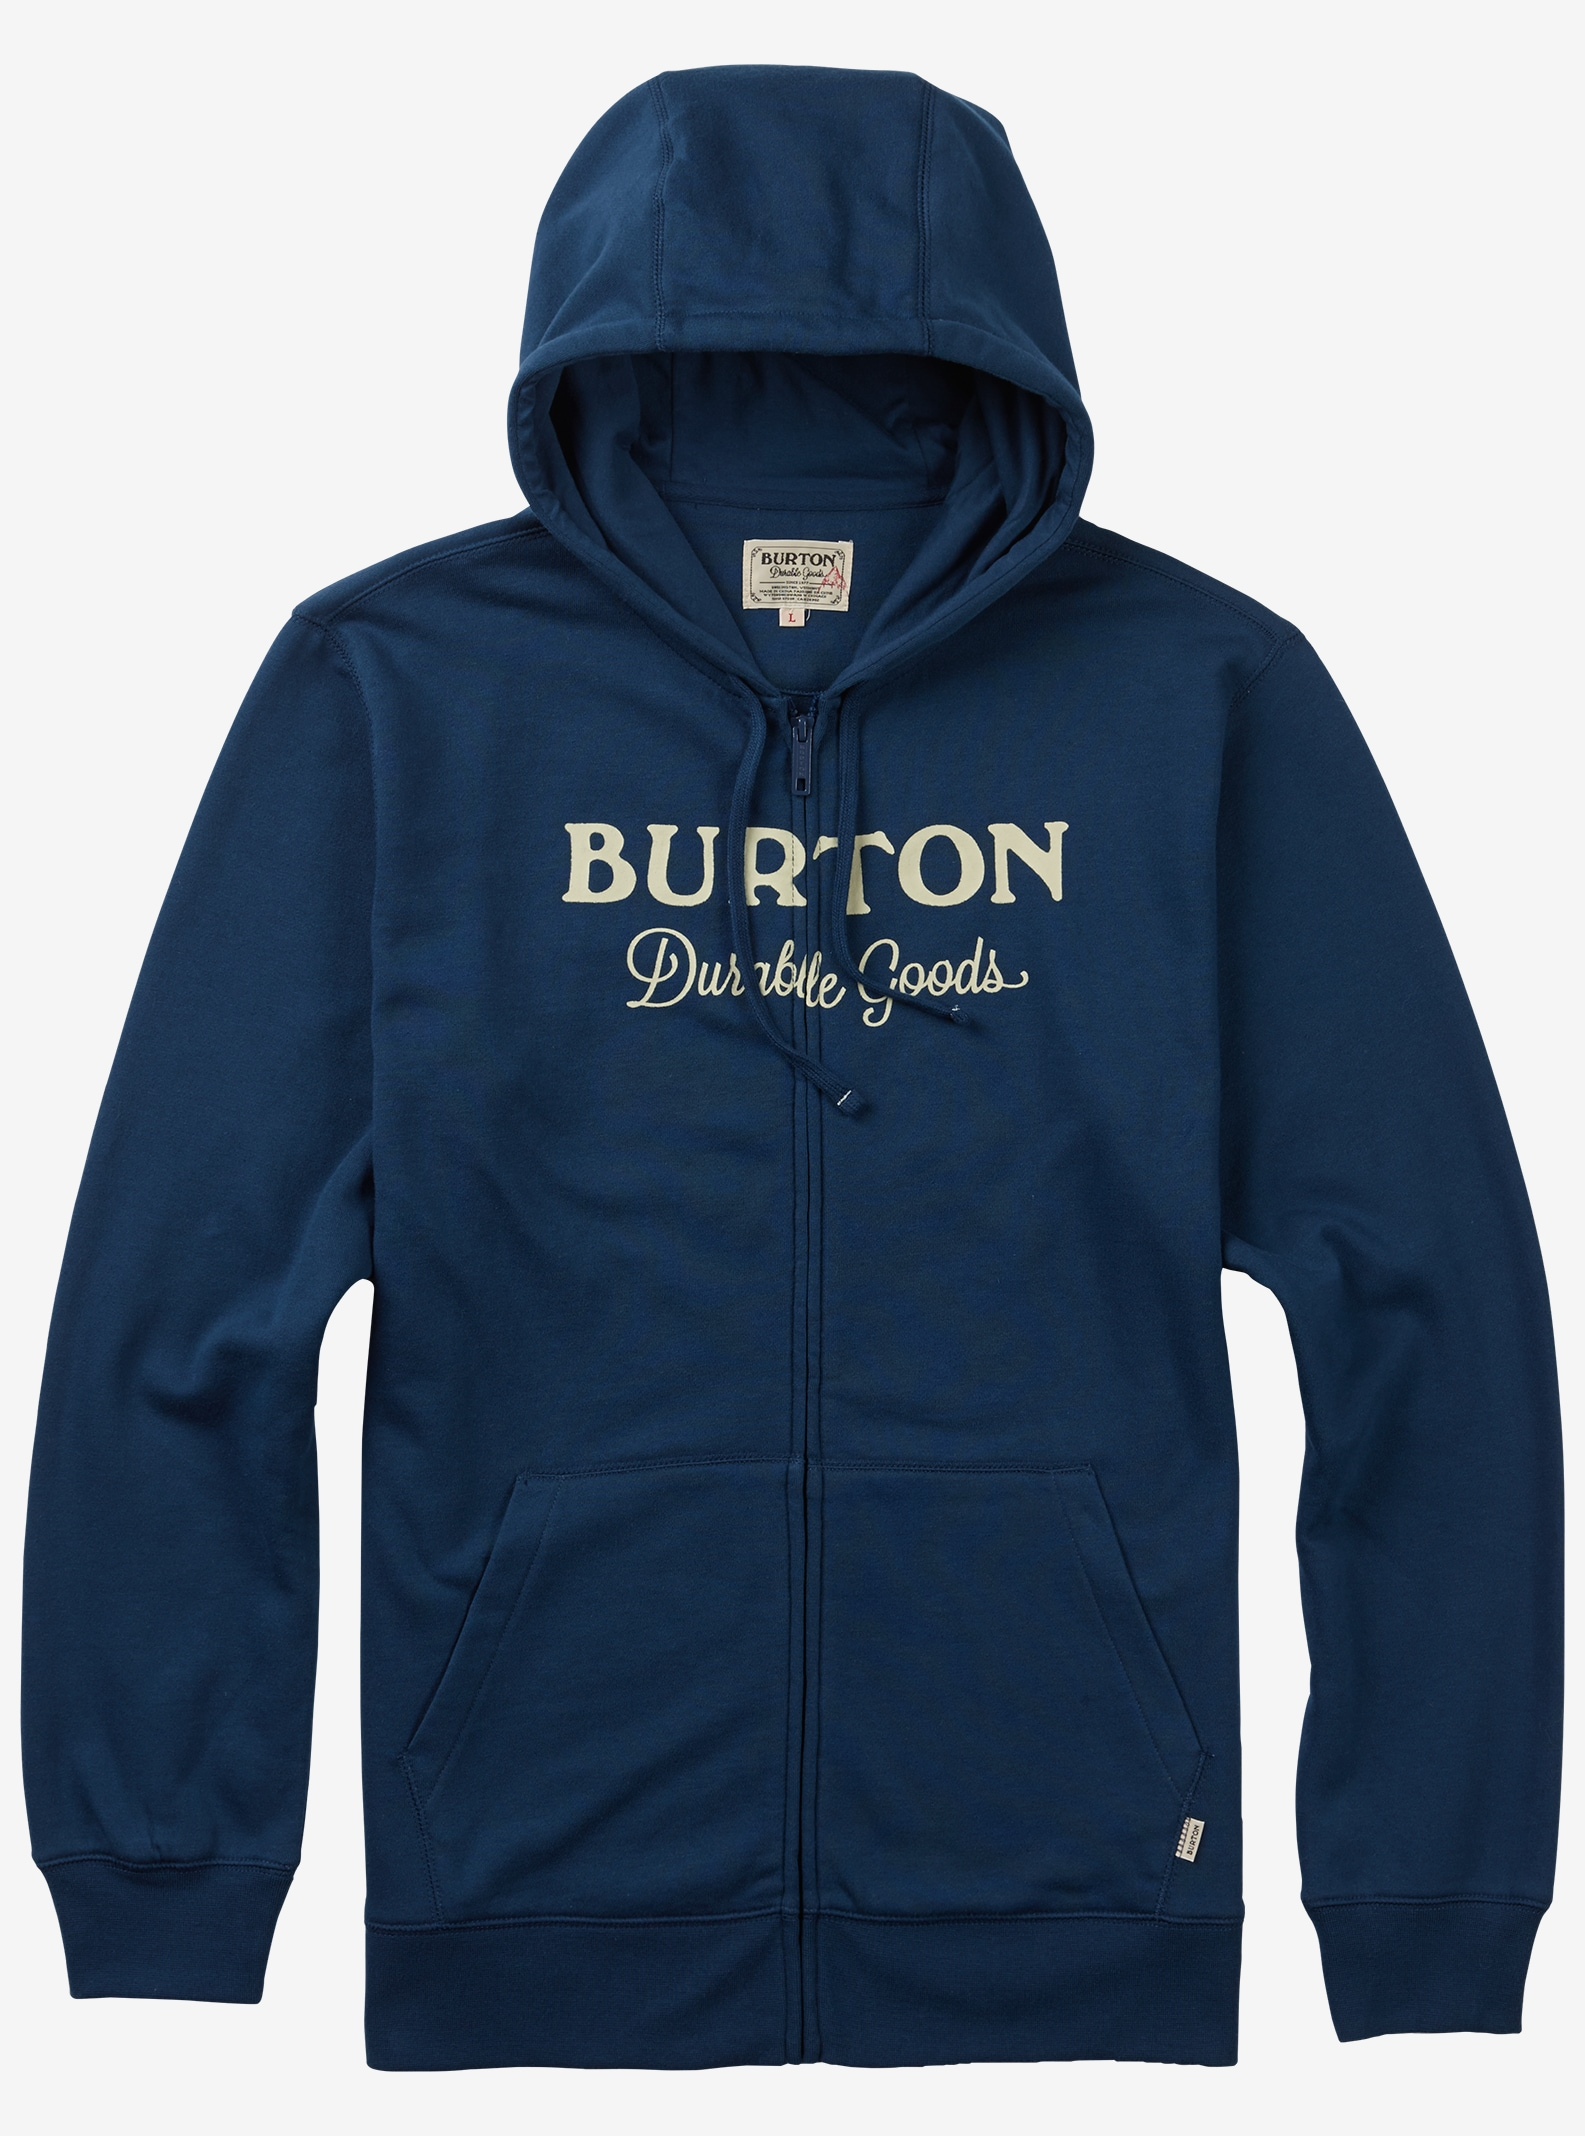 Burton Durable Goods Full-Zip Hoodie shown in Indigo